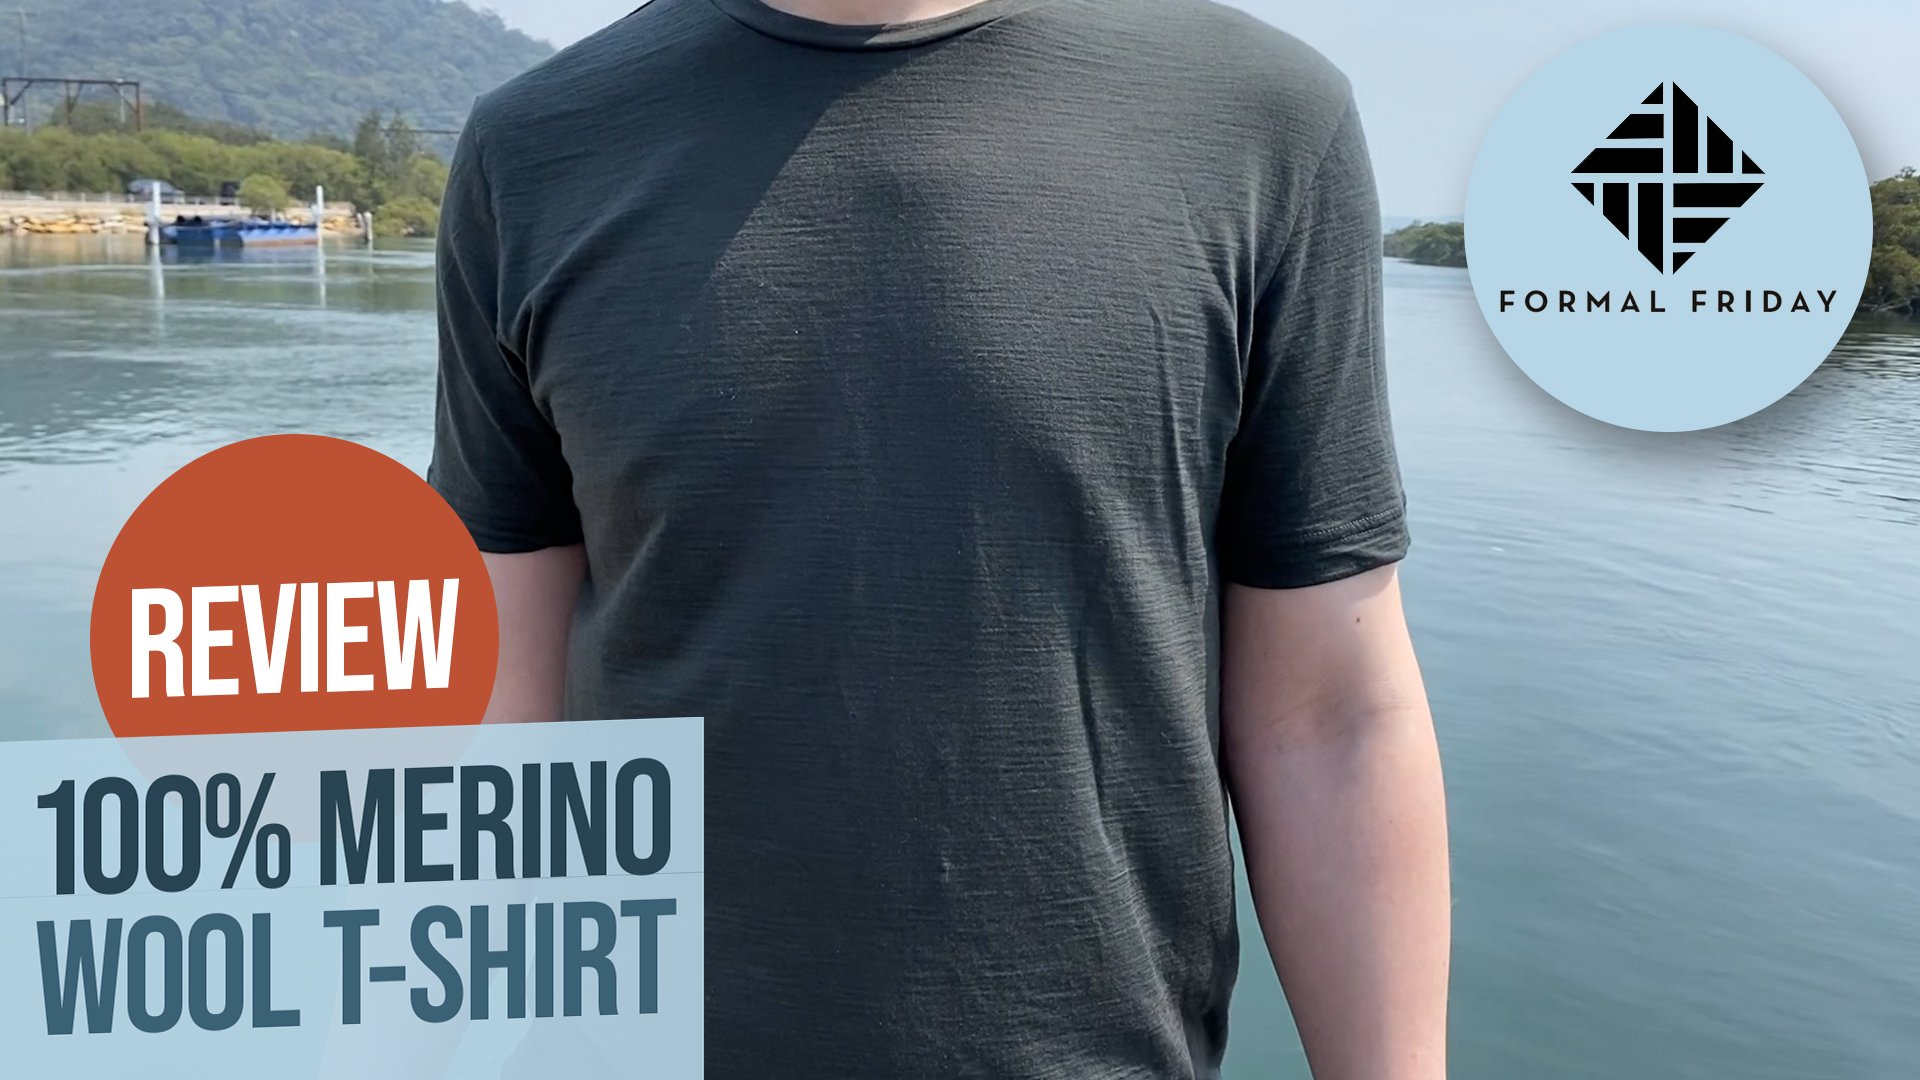 Formal Friday Merino T-shirt Review